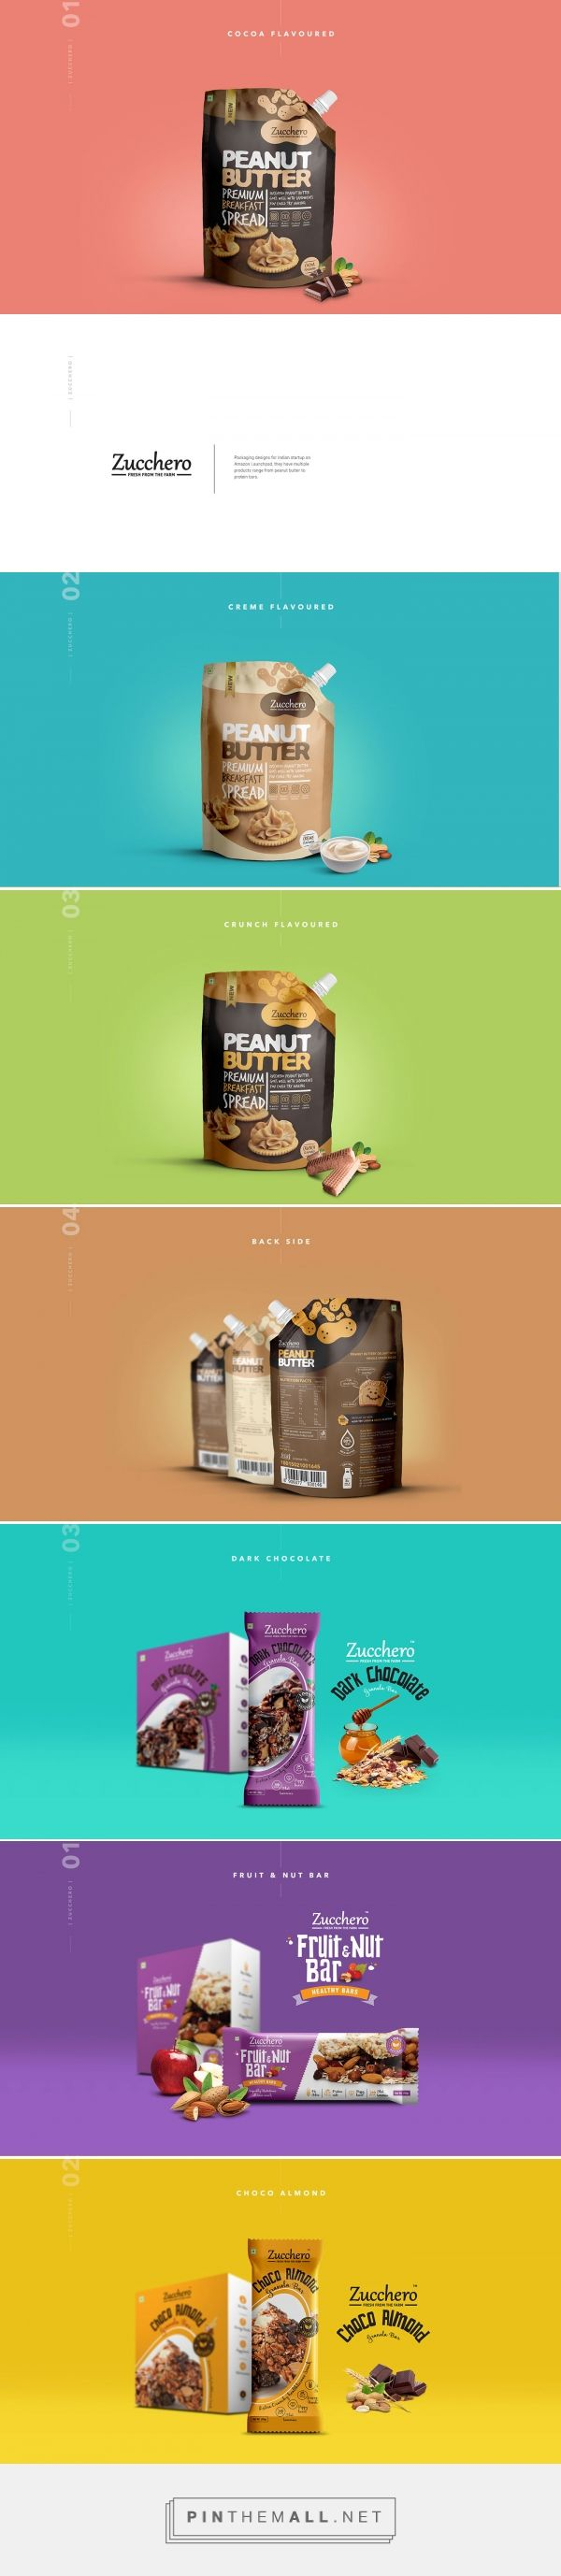 Hembros food products fresh from the farm by Clay Brains. Source: Behance. Pin curated by #SFields99 #packaging #design #inspiration #ideas #product #branding #food #creative